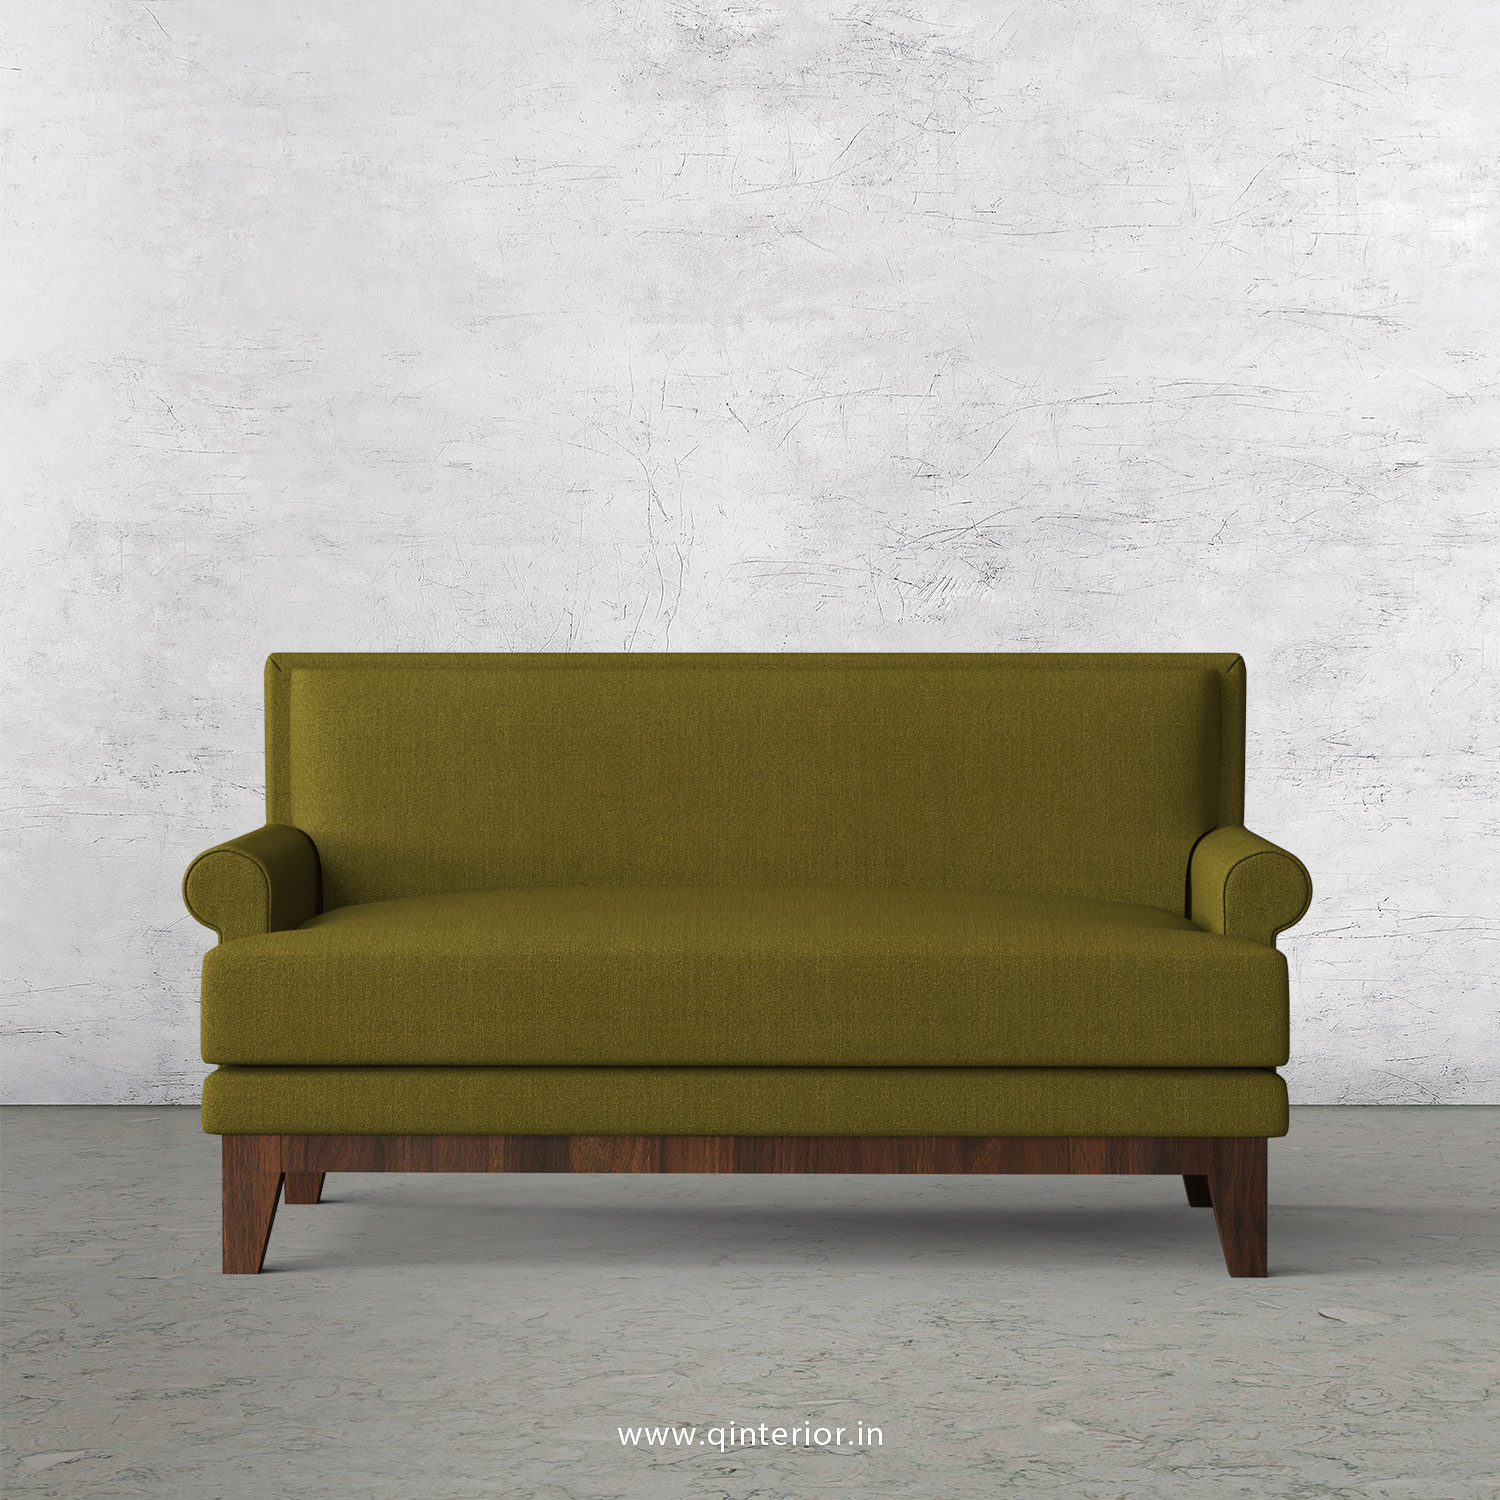 Aviana 2 Seater Sofa in Bargello Fabric - SFA001 BG03